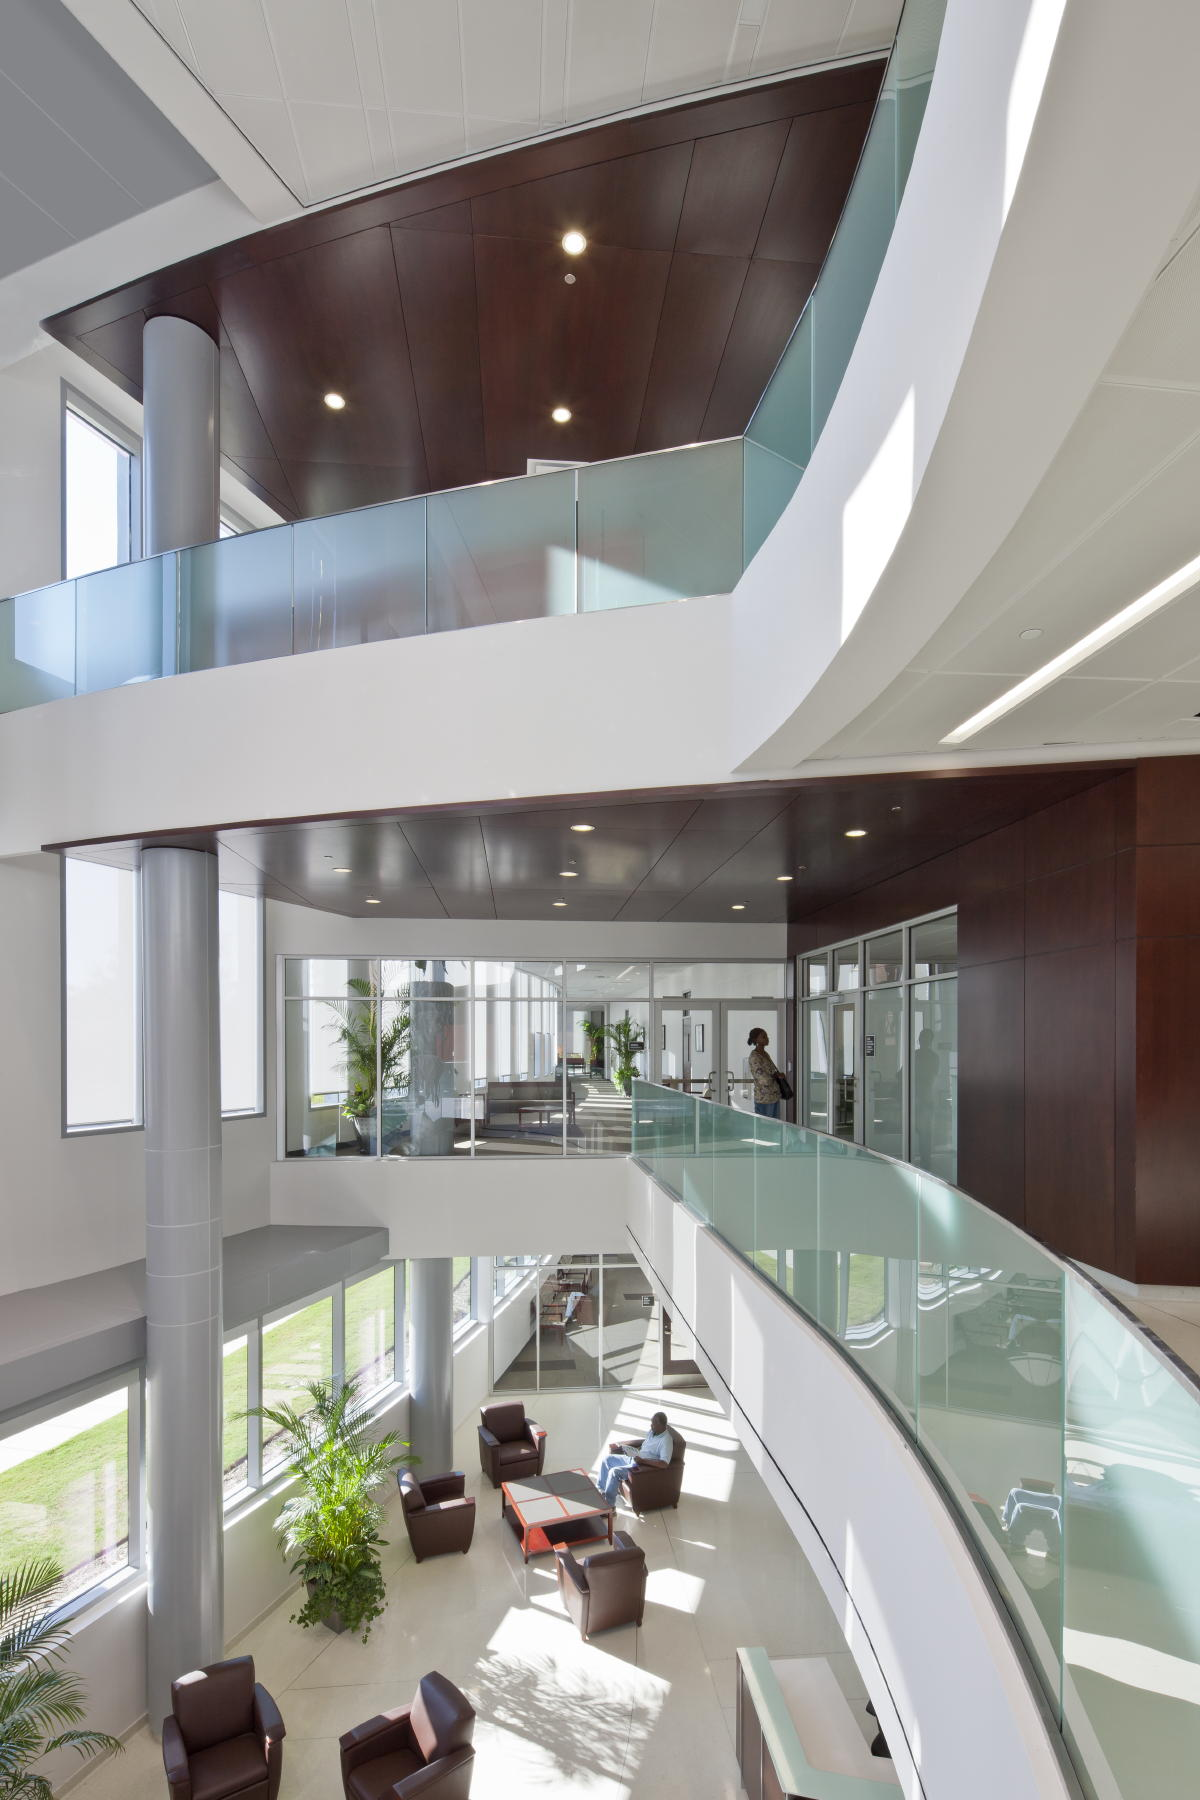 The CDMs Three Story Main Lobby Is Glass Enclosed And Features Rich Brown Wood Paneling